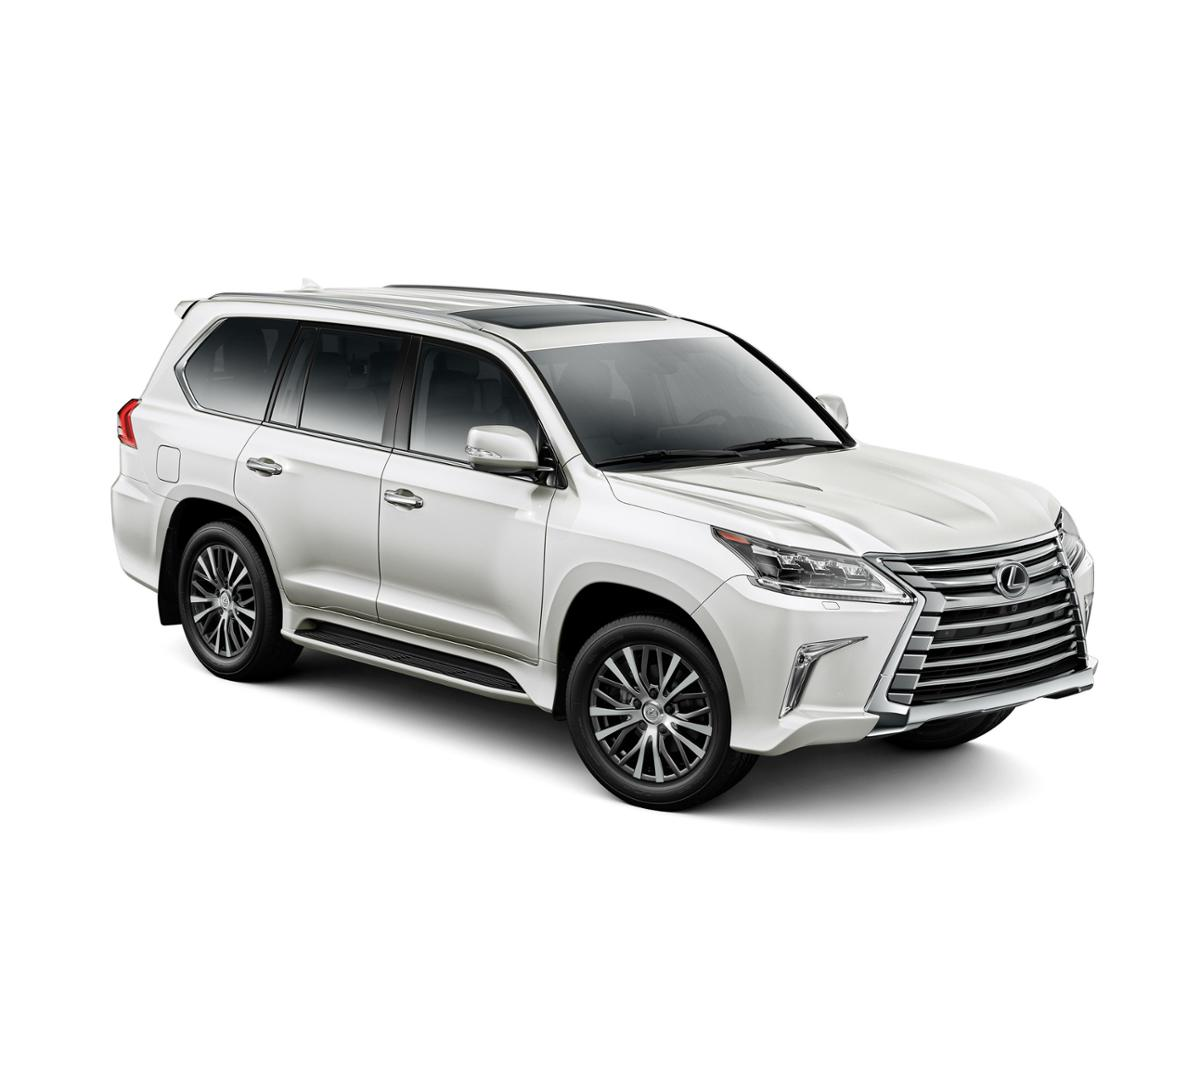 2017 Lexus LX 570 Vehicle Photo in Santa Monica, CA 90404